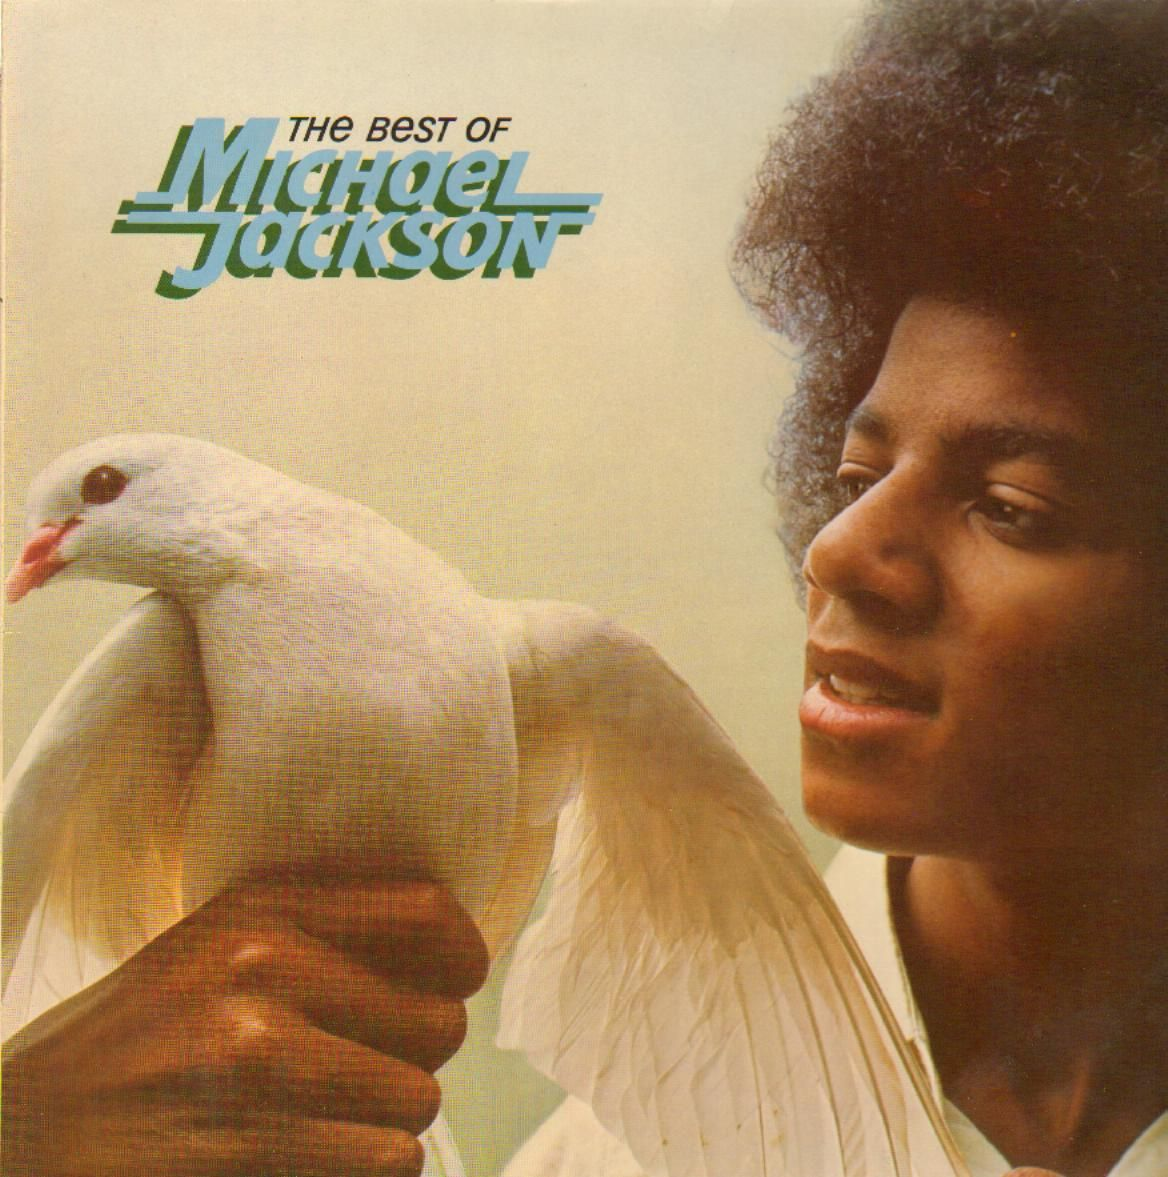 40 YEARS AGO TODAY |12/8/72| Motown Records released, The Best of Michael Jackson, his first greatest hits compilation.